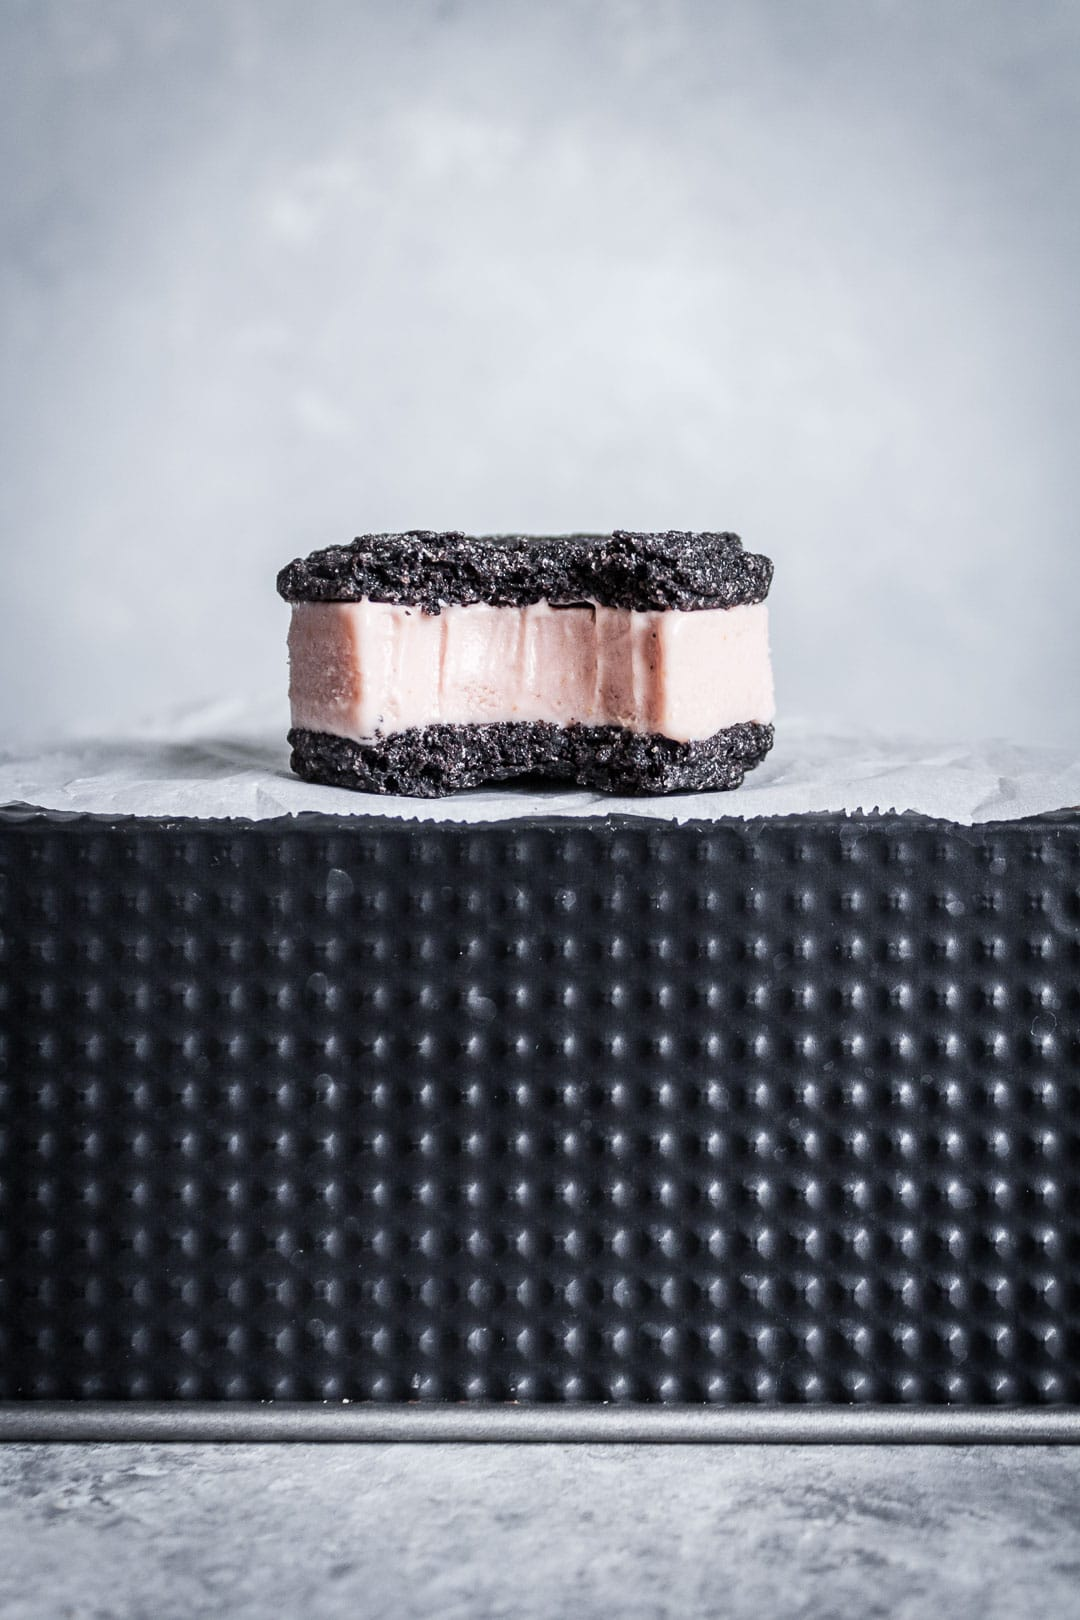 Side view of chocolate blood orange ice cream sandwich with bite taken out, resting on parchment paper and a black metal tin